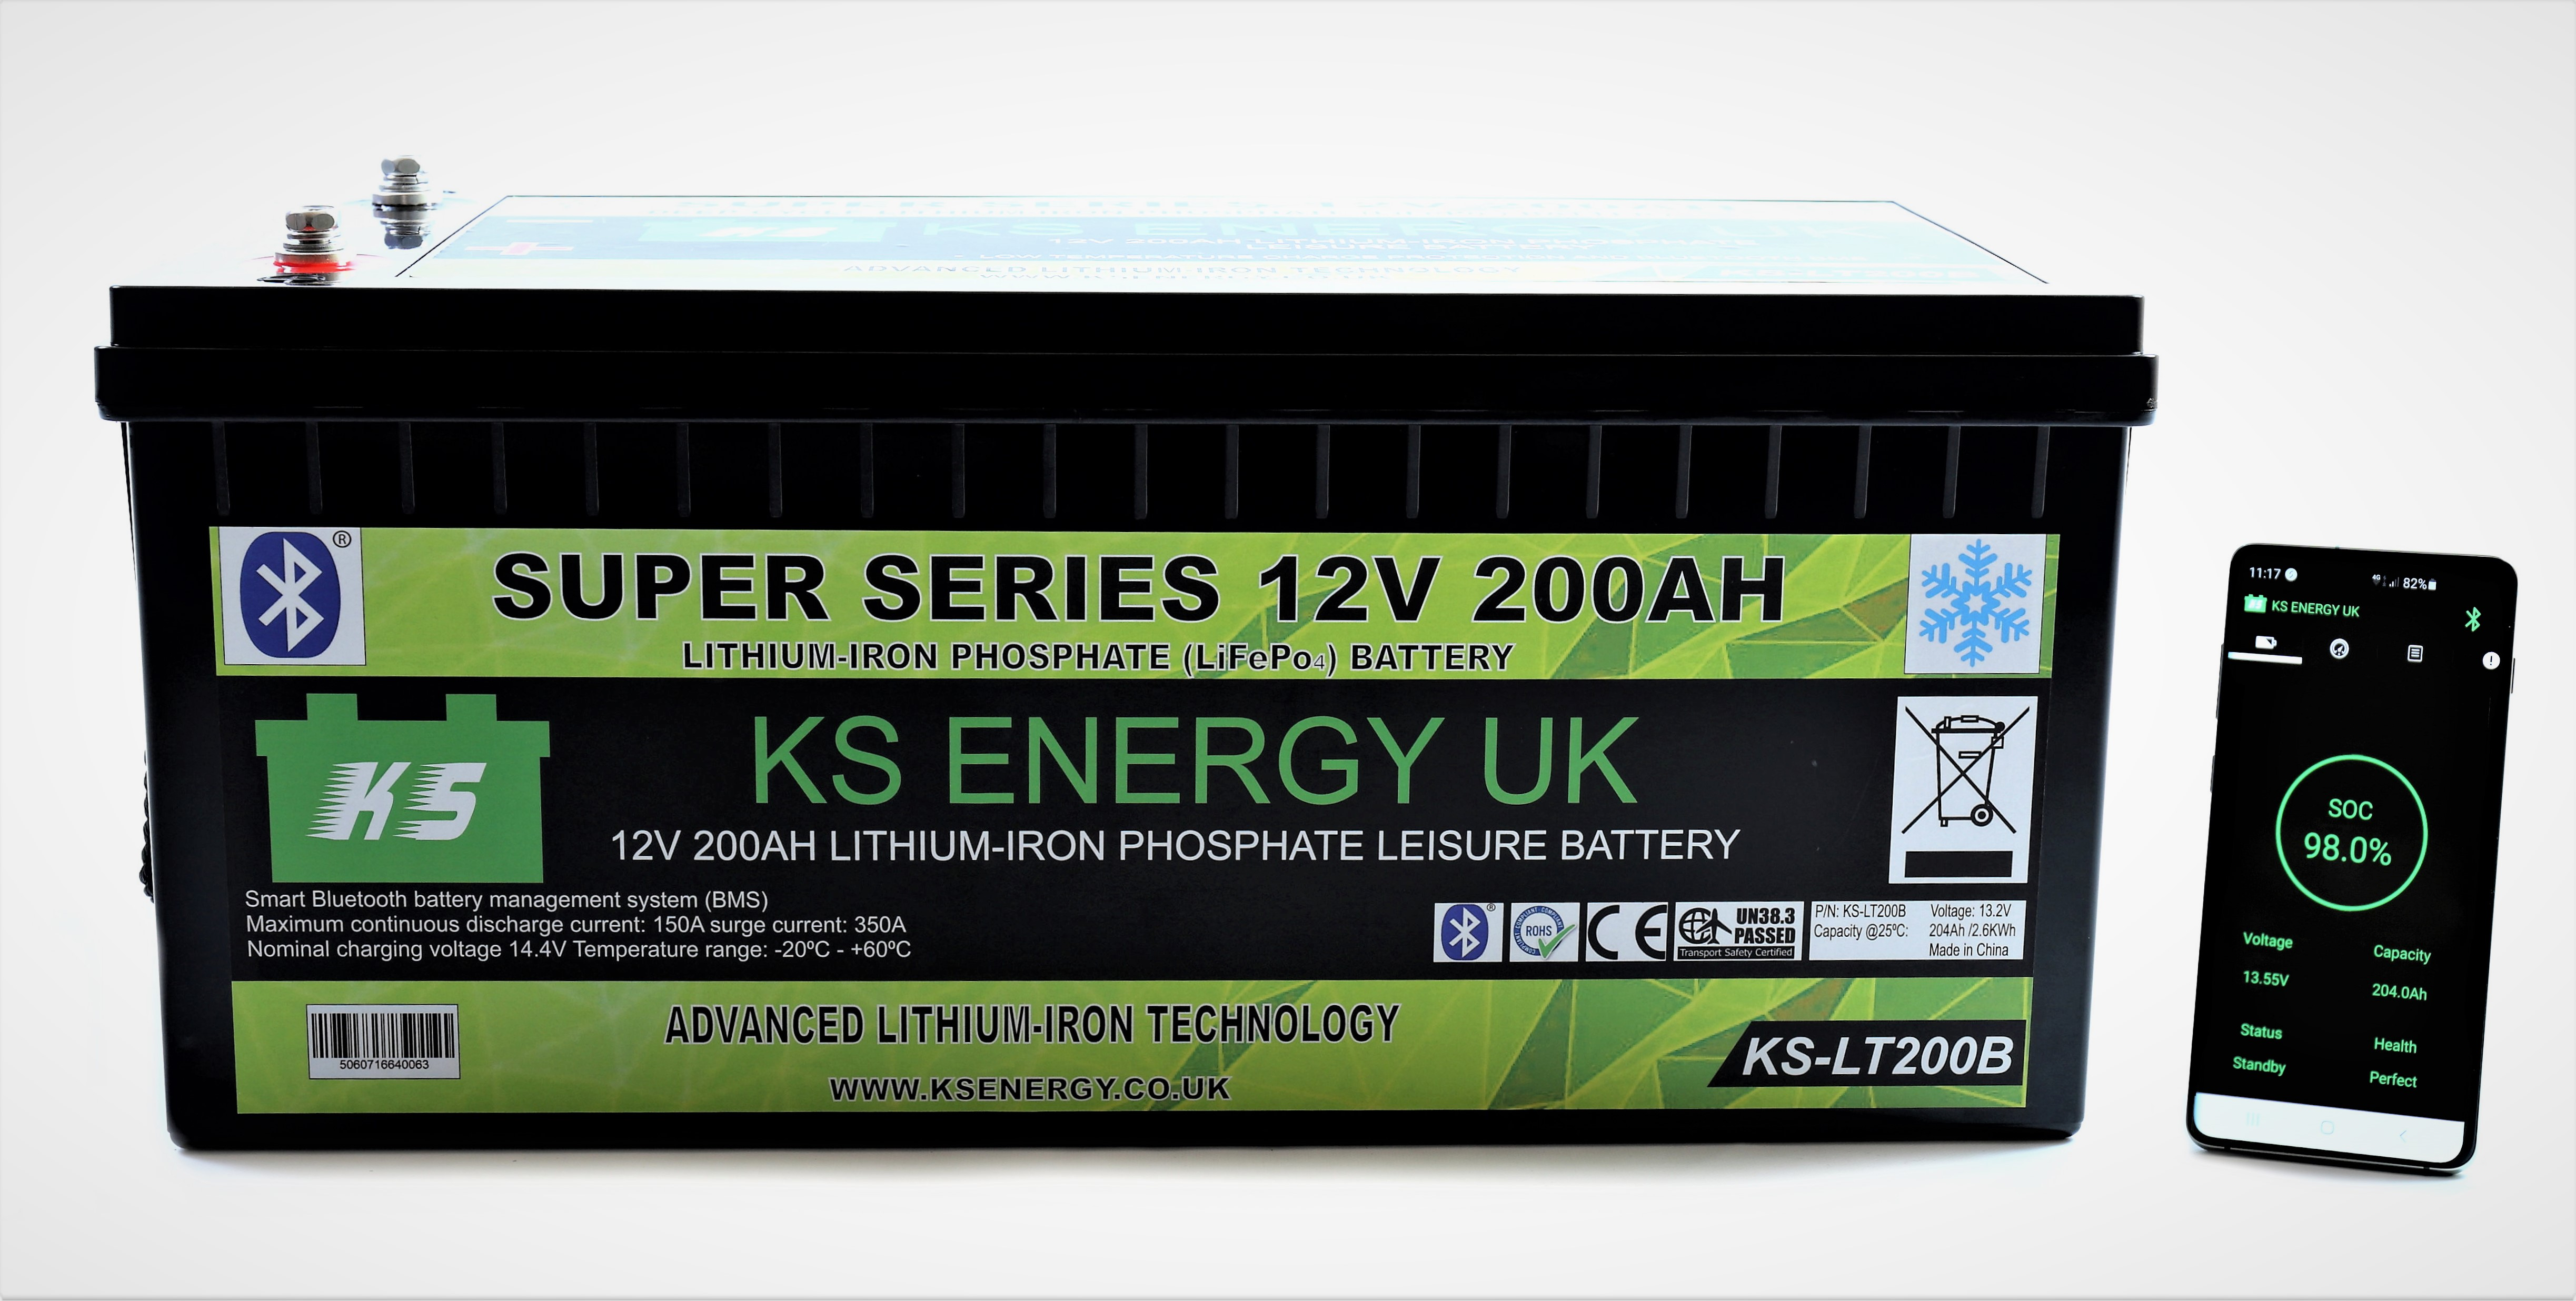 5): KS-LT200B 12v 200AH Bluetooth High Power LiFePo4 lithium leisure battery